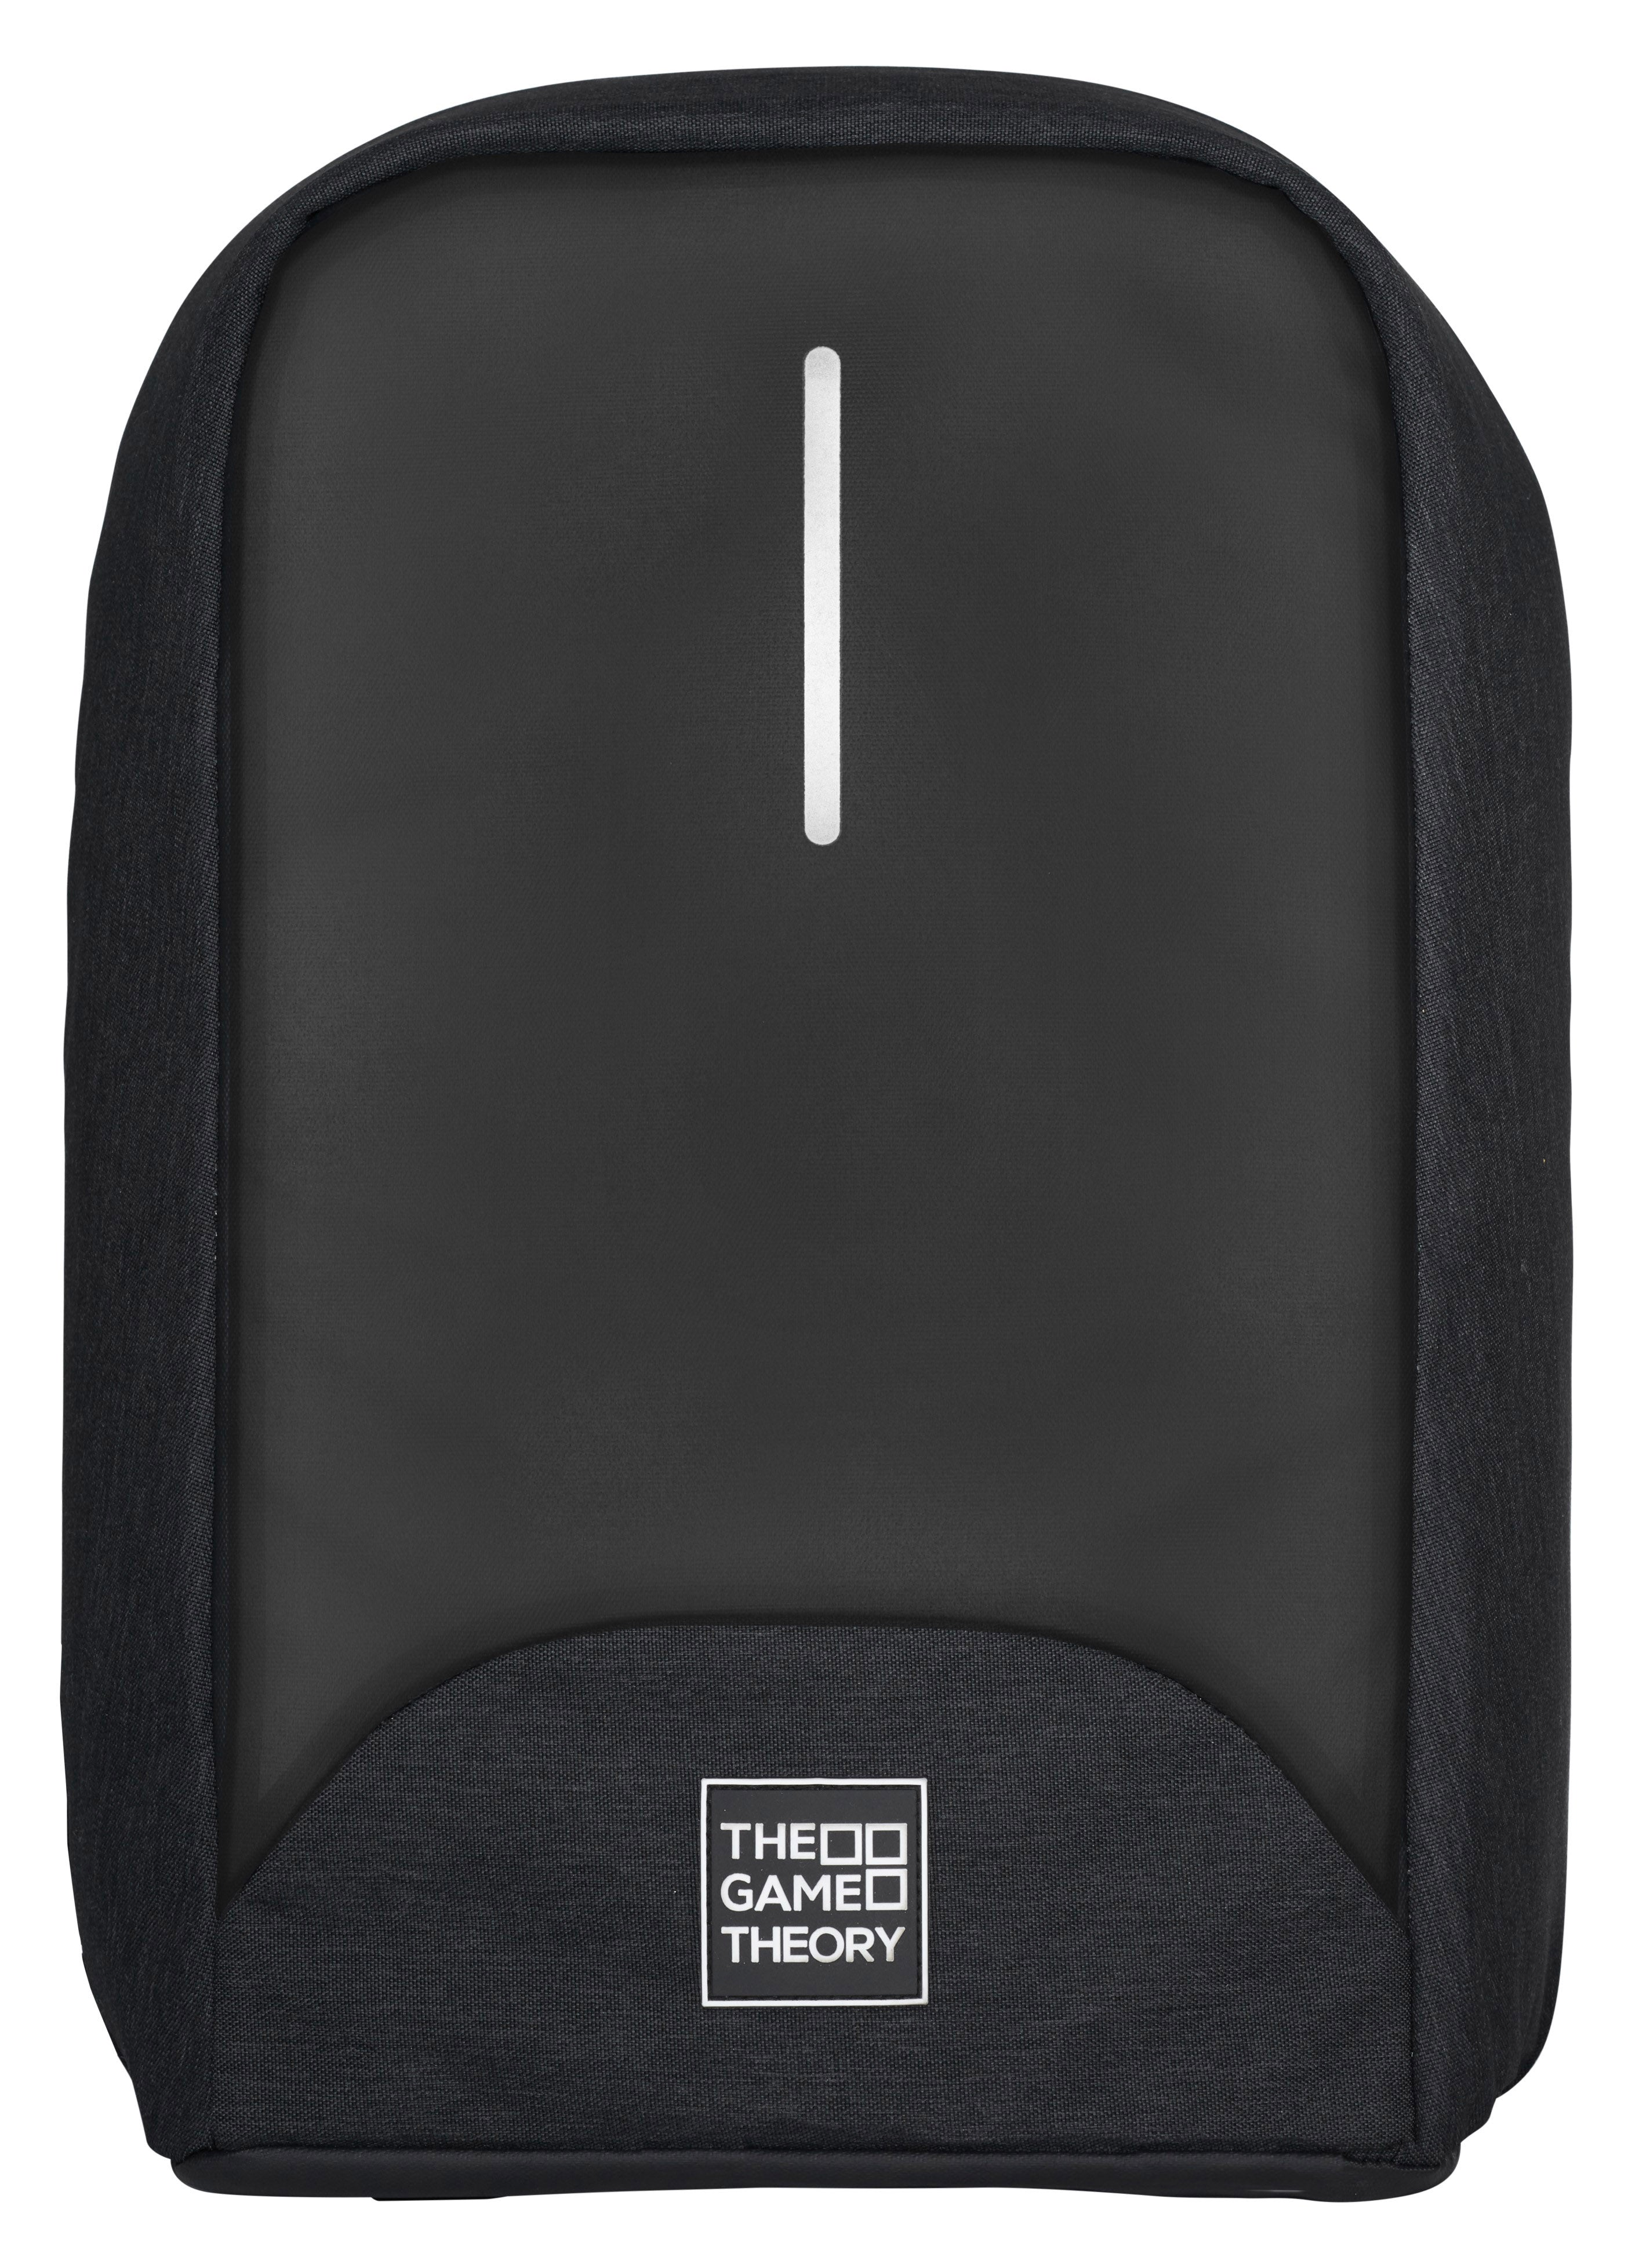 The Game Theory front view of backpack. Secure gamging console bookbag